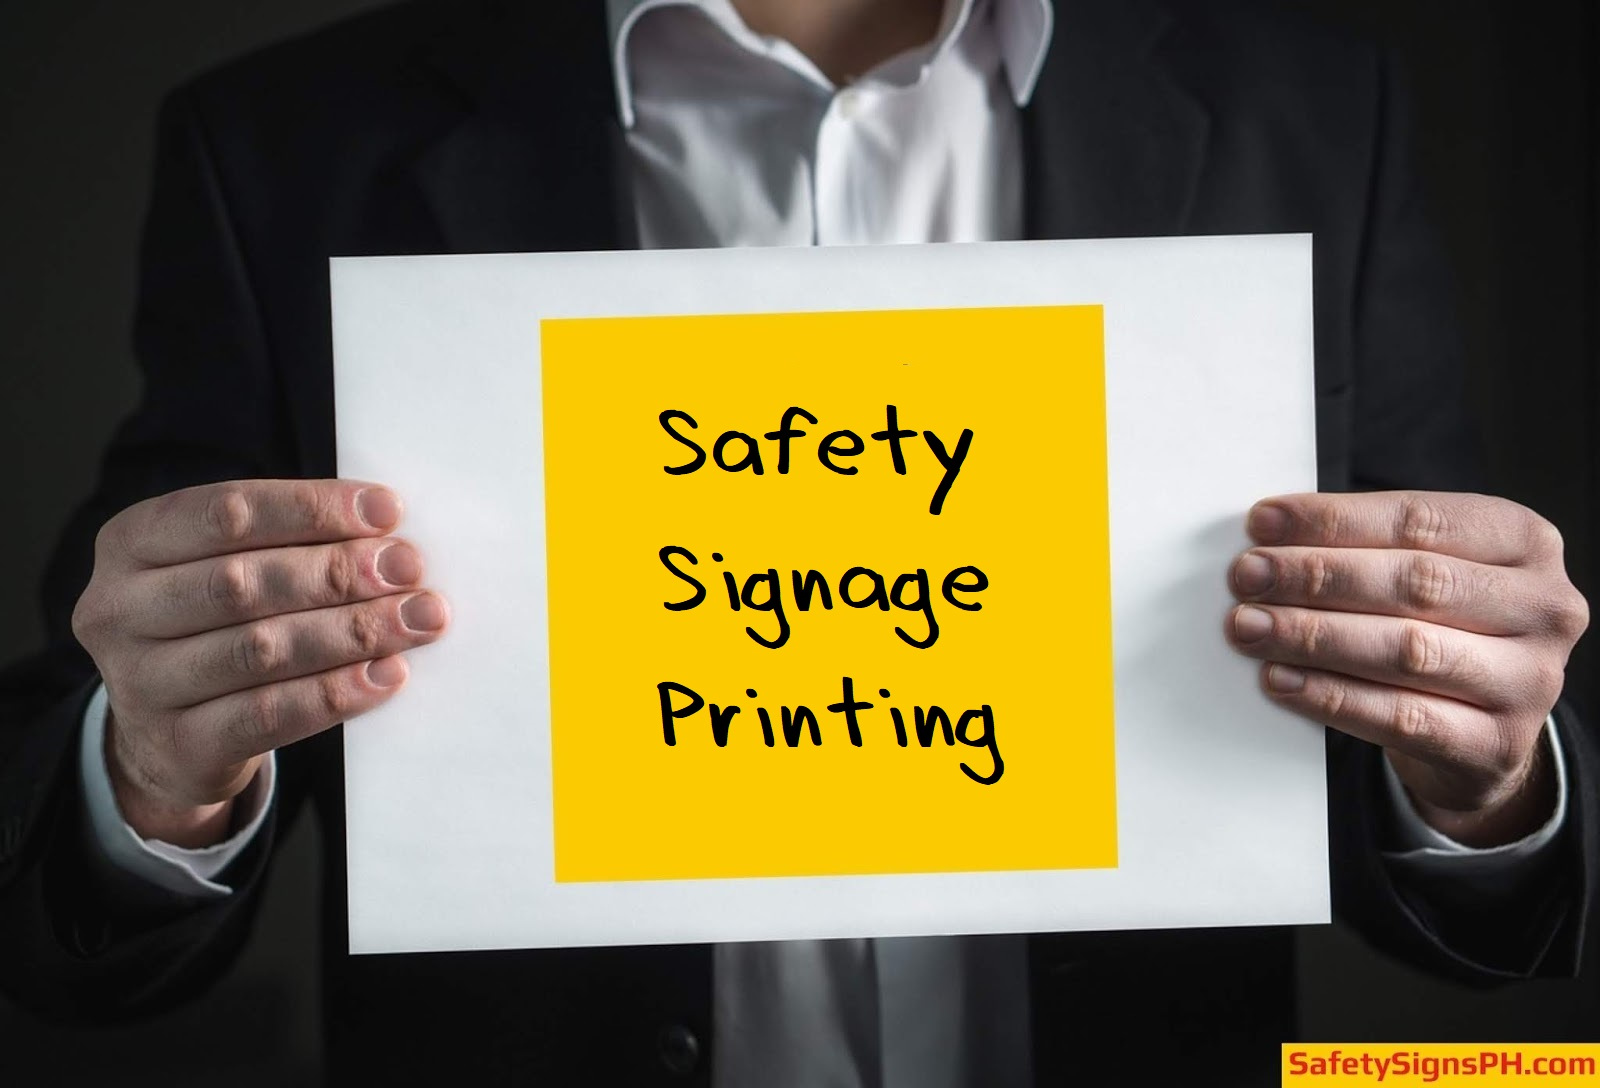 Safety Signage Printing Services Philippines